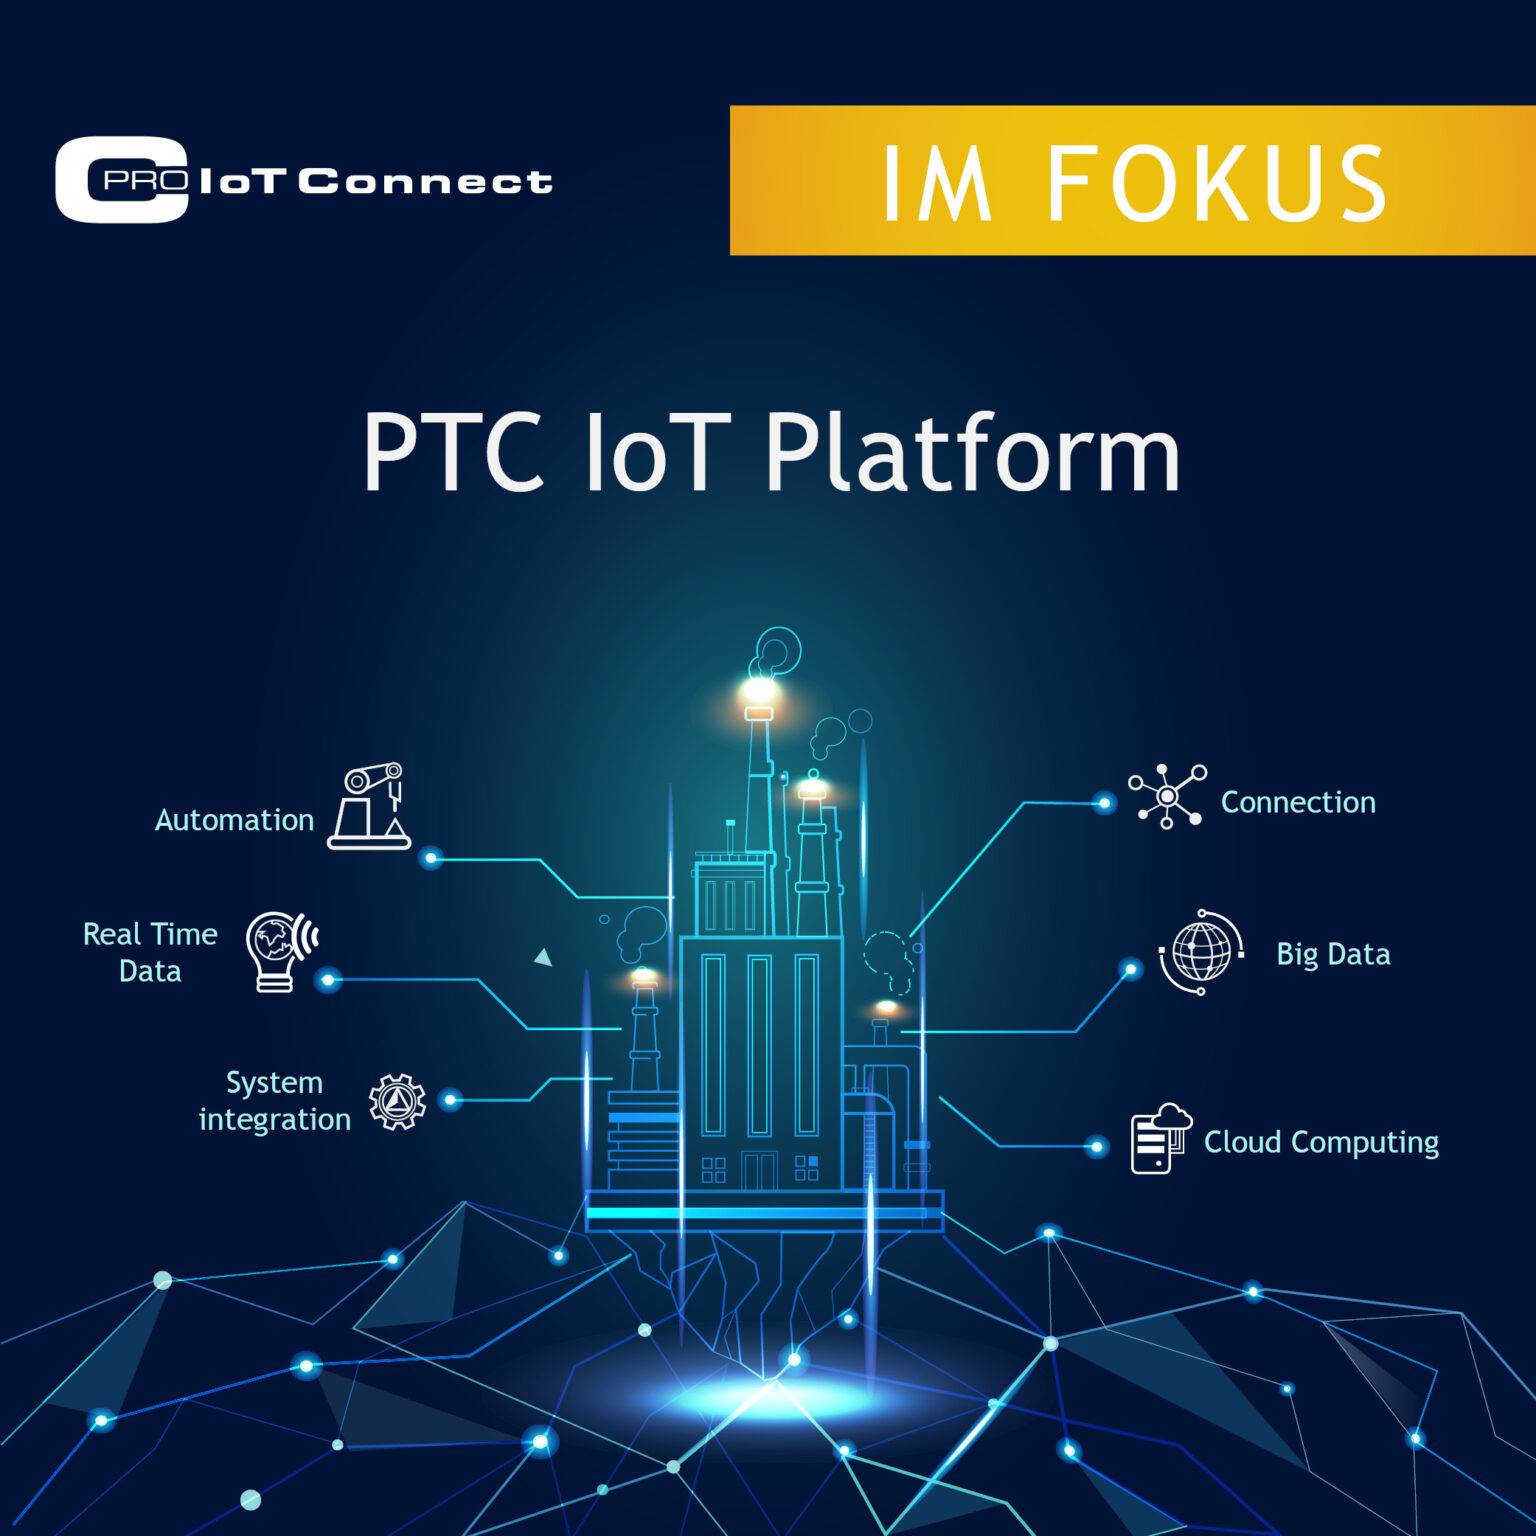 PTC IoT Platform ThingWorx